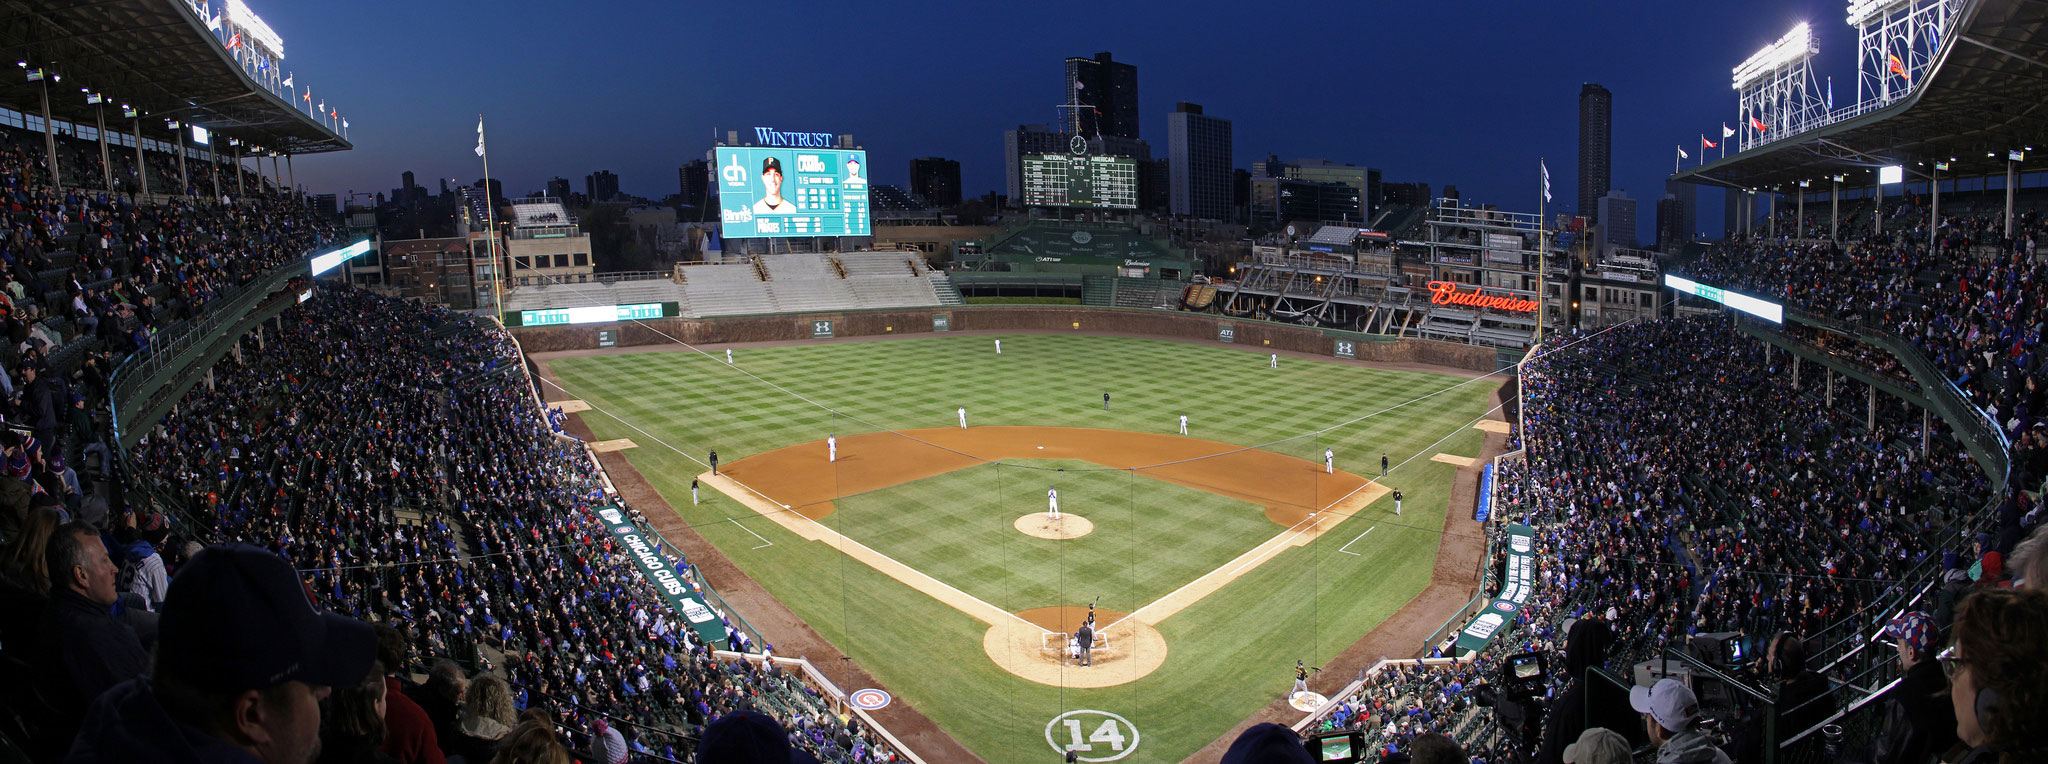 cubs-roger-smith-panorama